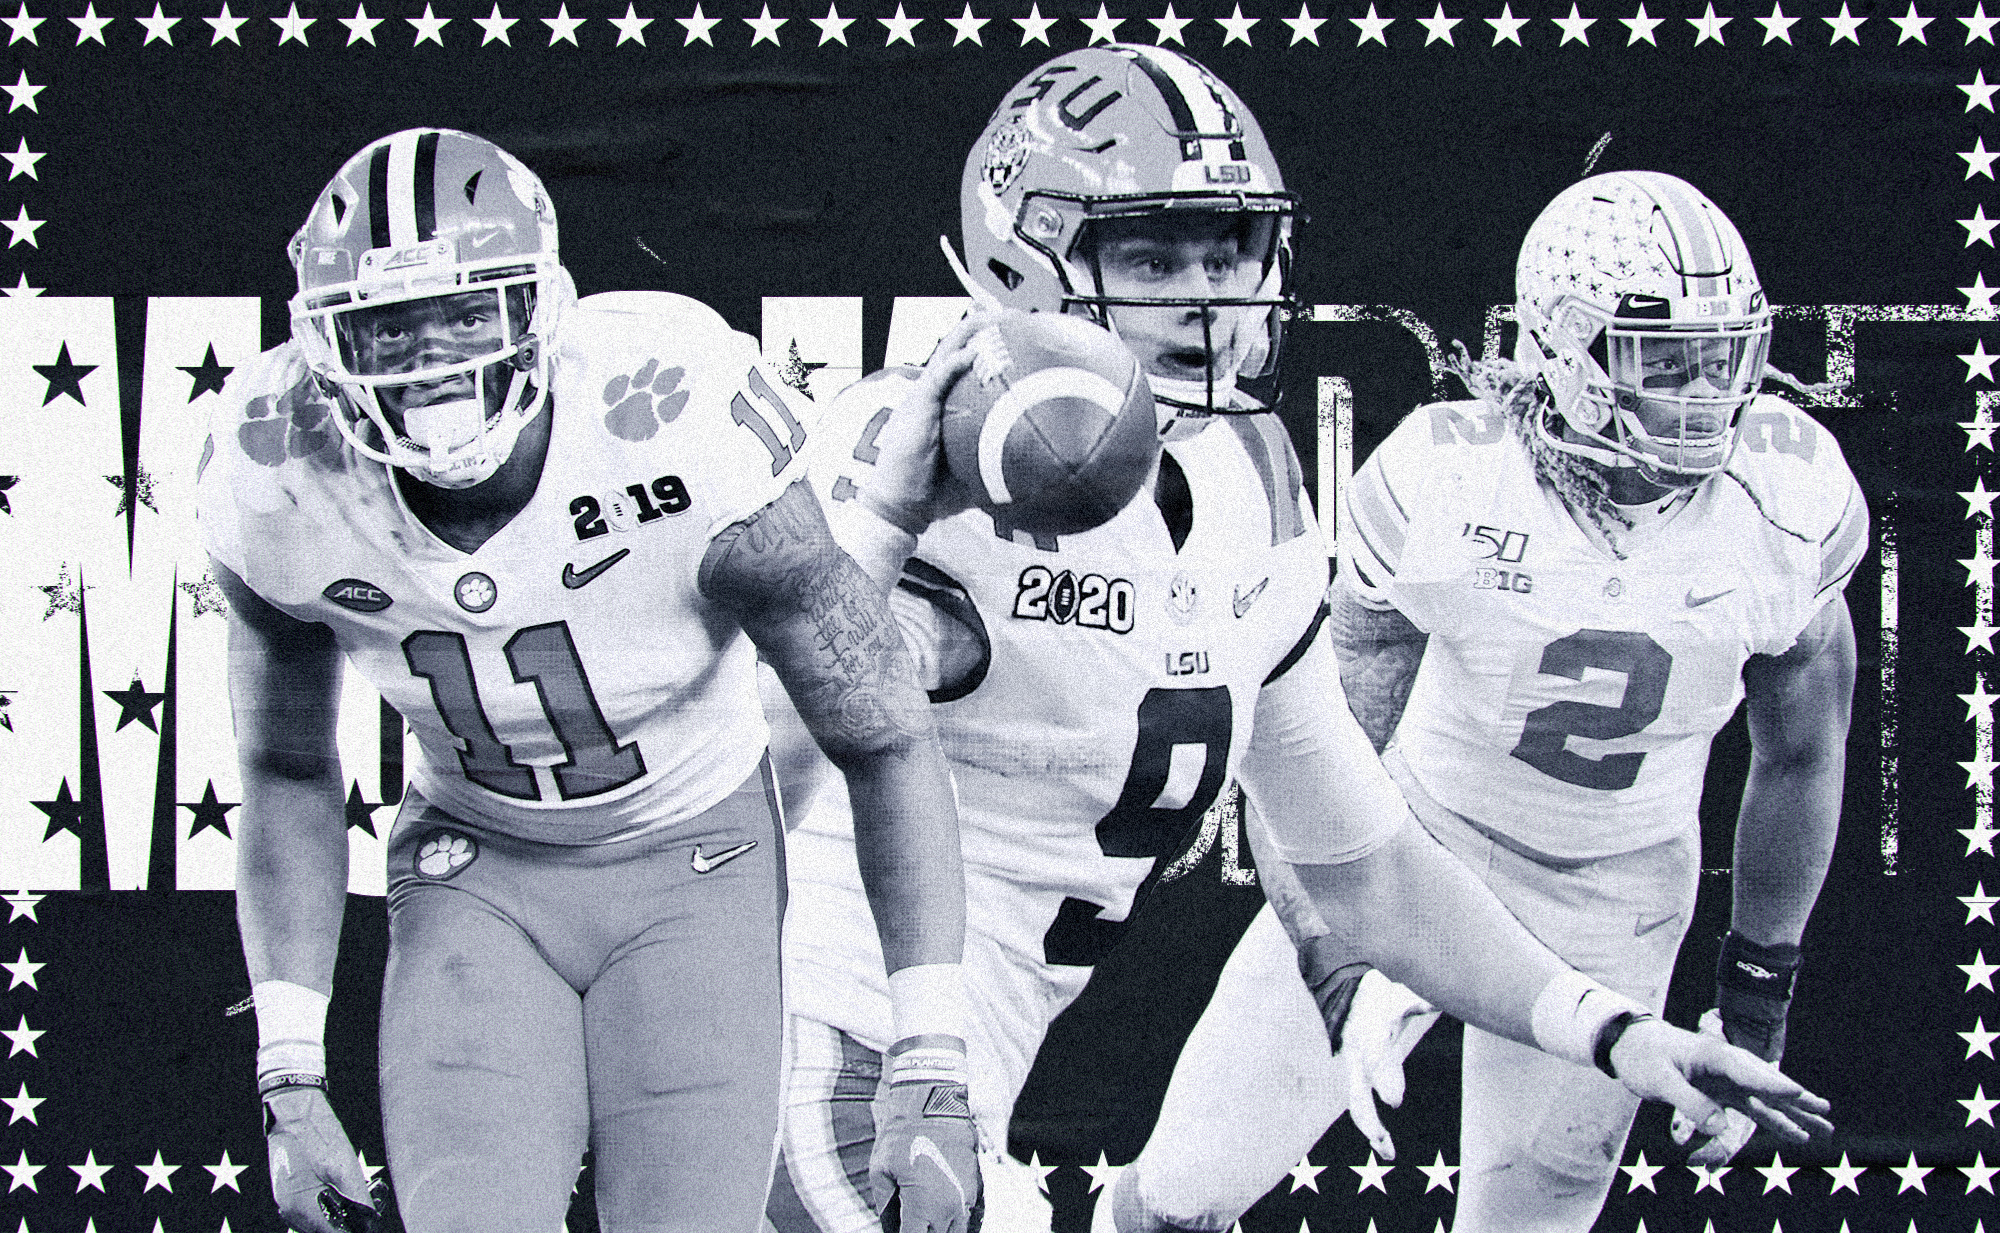 """A black and white collage of NFL Draft prospects Isaiah Simmons (Clemson LB), Joe Burrow (LSU QB), and Chase Young (Ohio State DE), with the words """"MOCK DRAFT"""" in the background surrounded by stars"""